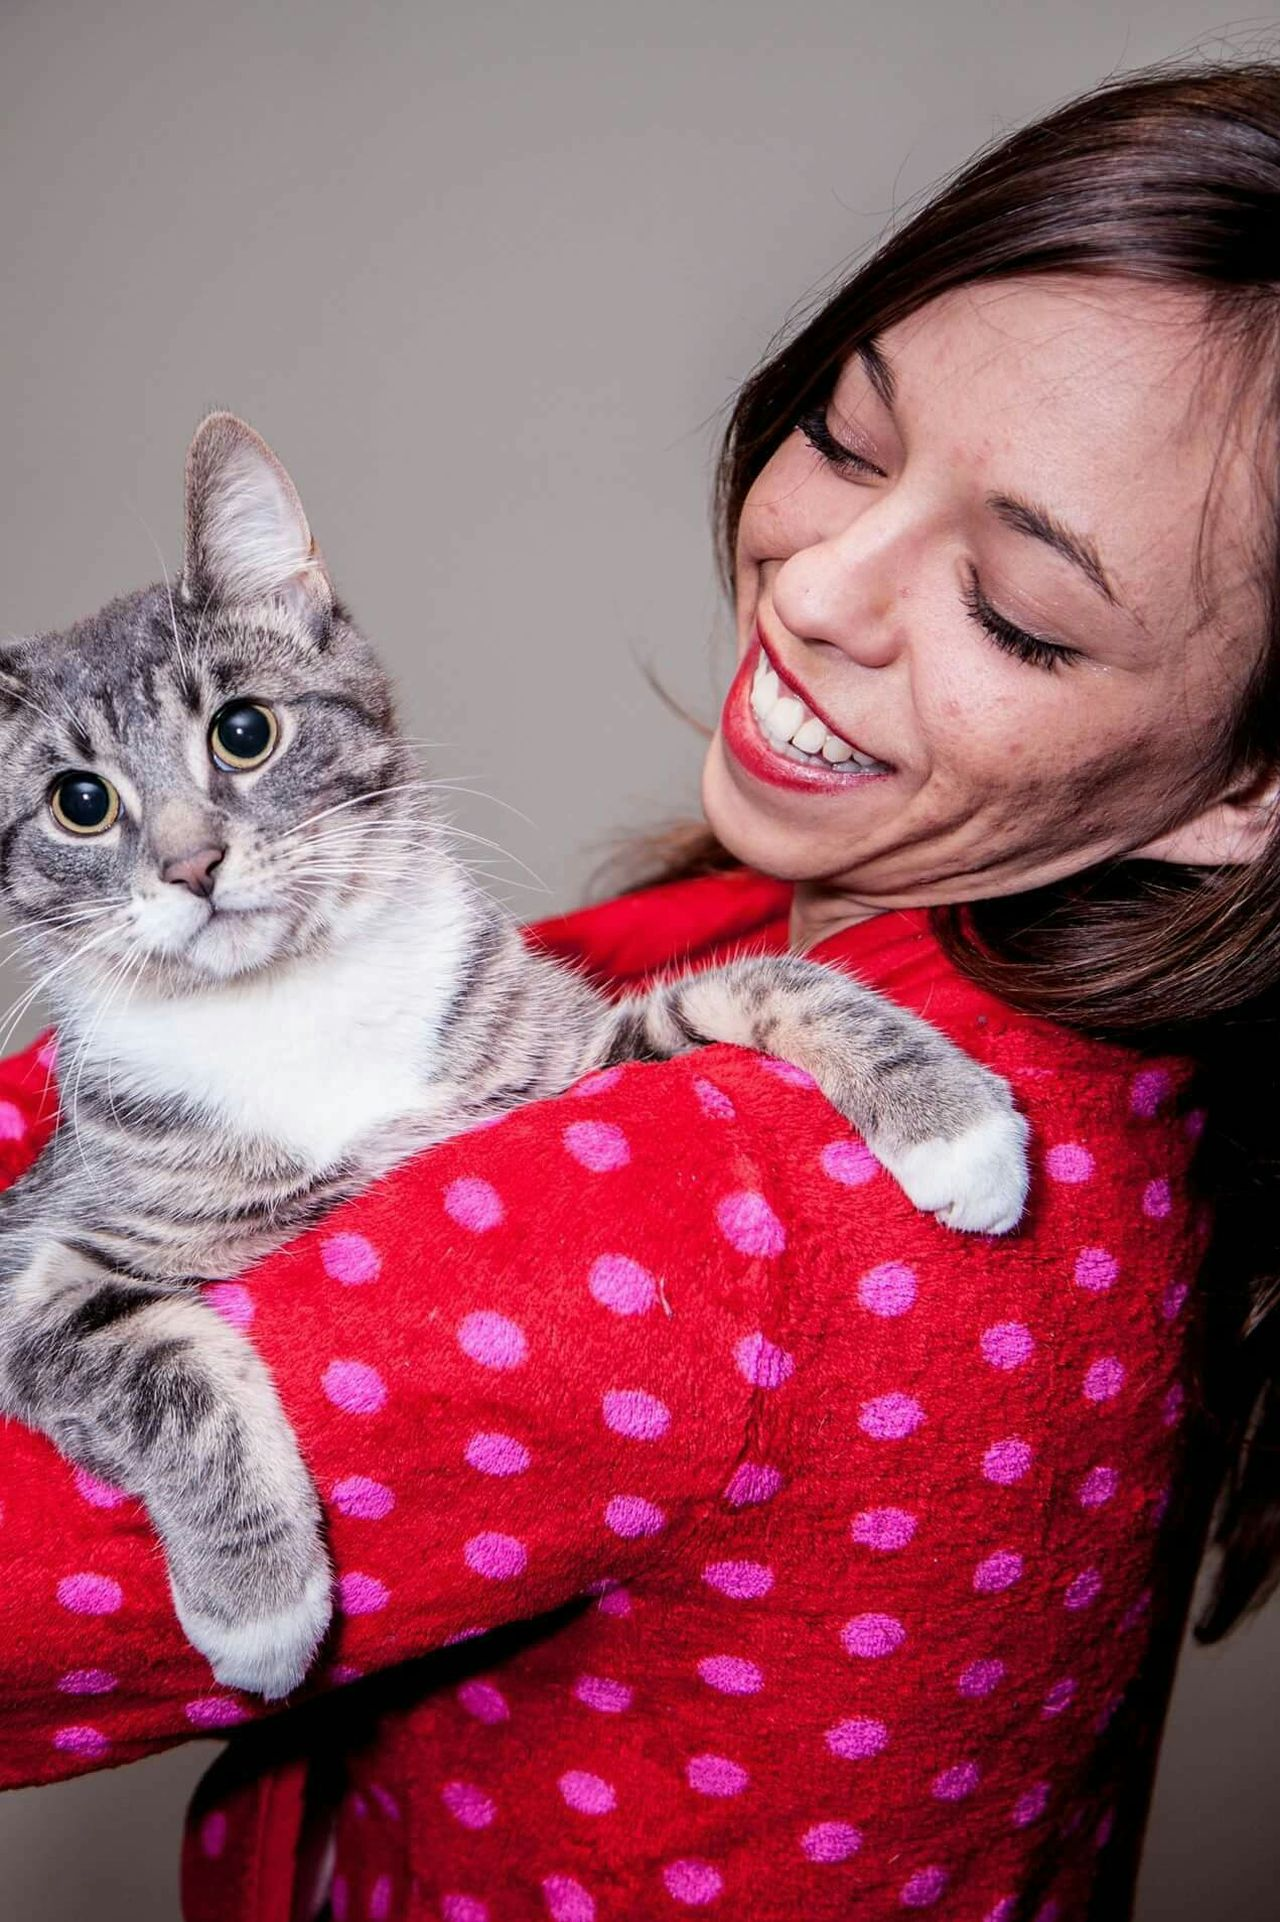 Kitty love One Animal Red Pets One Person Cheerful Smiling Happiness Indoors  Real People Animal Themes Fun Animal Young Adult Happiness Eyes Cat Green Color Looking At Camera